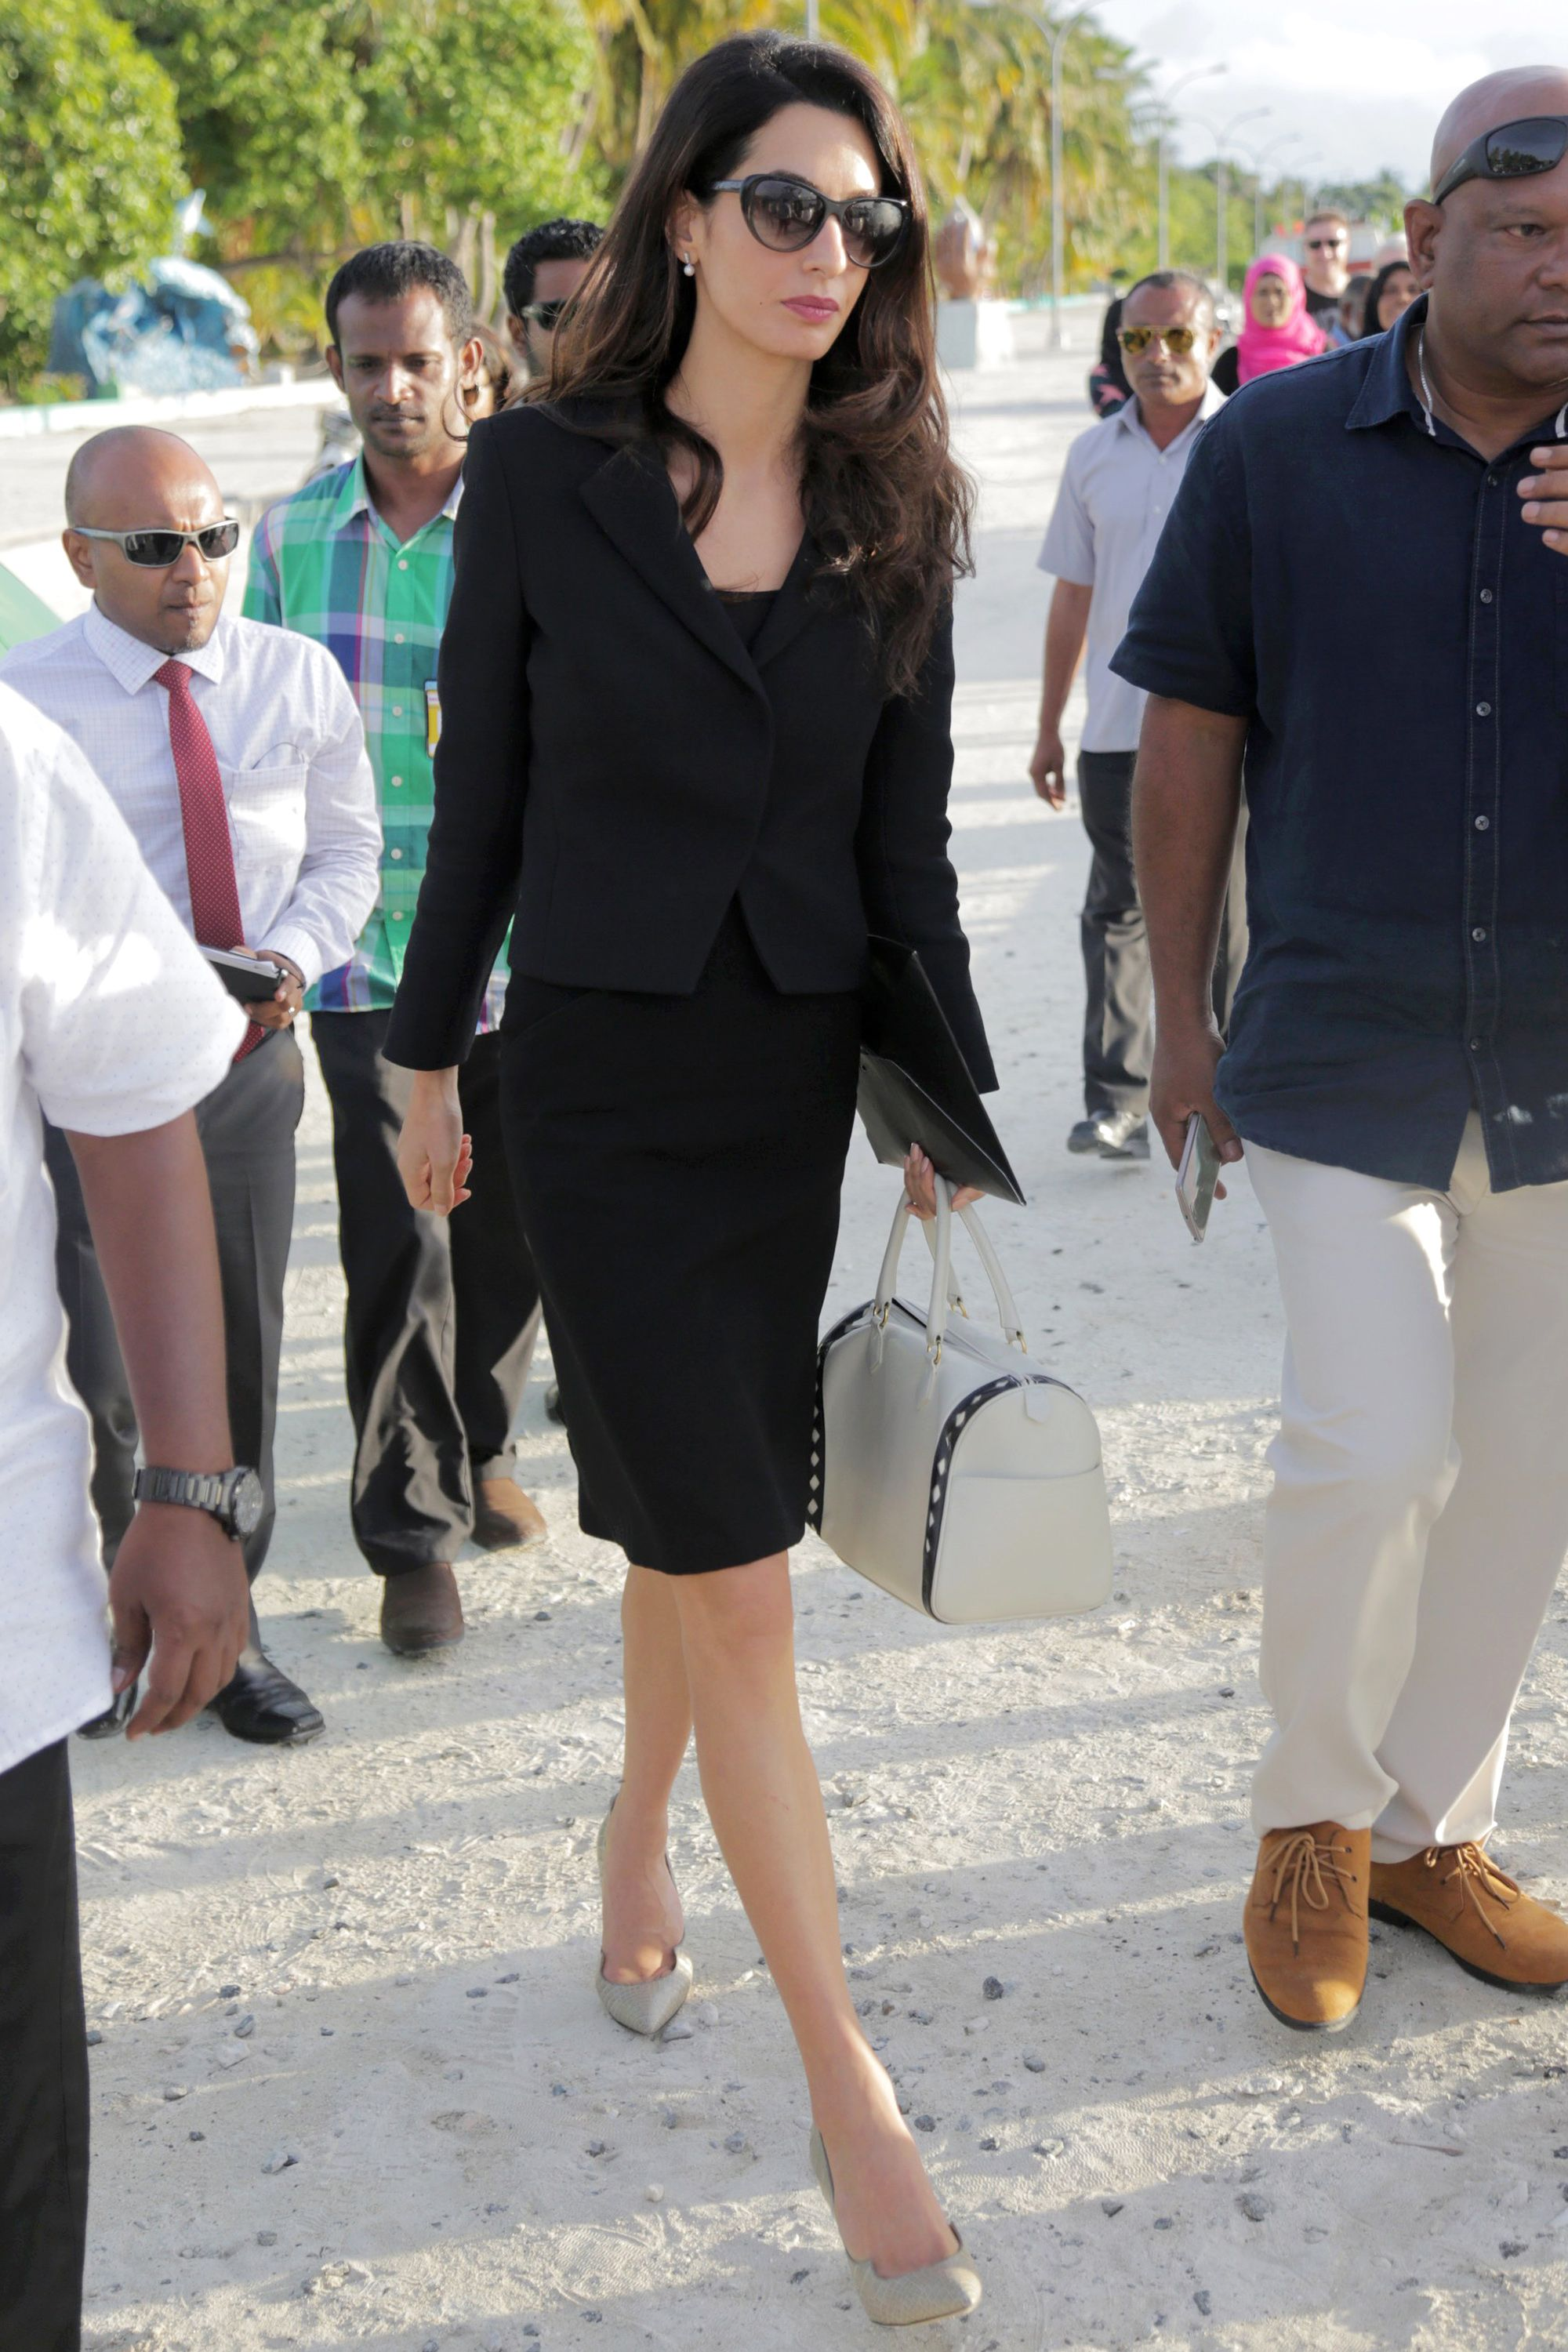 amal alamuddin wikiamal alamuddin 2017, amal alamuddin clooney, amal alamuddin george clooney, amal alamuddin vk, amal alamuddin wiki, amal alamuddin speech, amal alamuddin young, amal alamuddin photo, amal alamuddin style blog, amal alamuddin twins, amal alamuddin bags, amal alamuddin youtube, amal alamuddin oxford, amal alamuddin twitter, amal alamuddin interview, amal alamuddin shoes, amal alamuddin old photos, amal alamuddin barrister doughty street, amal alamuddin julian assange, amal alamuddin capelli